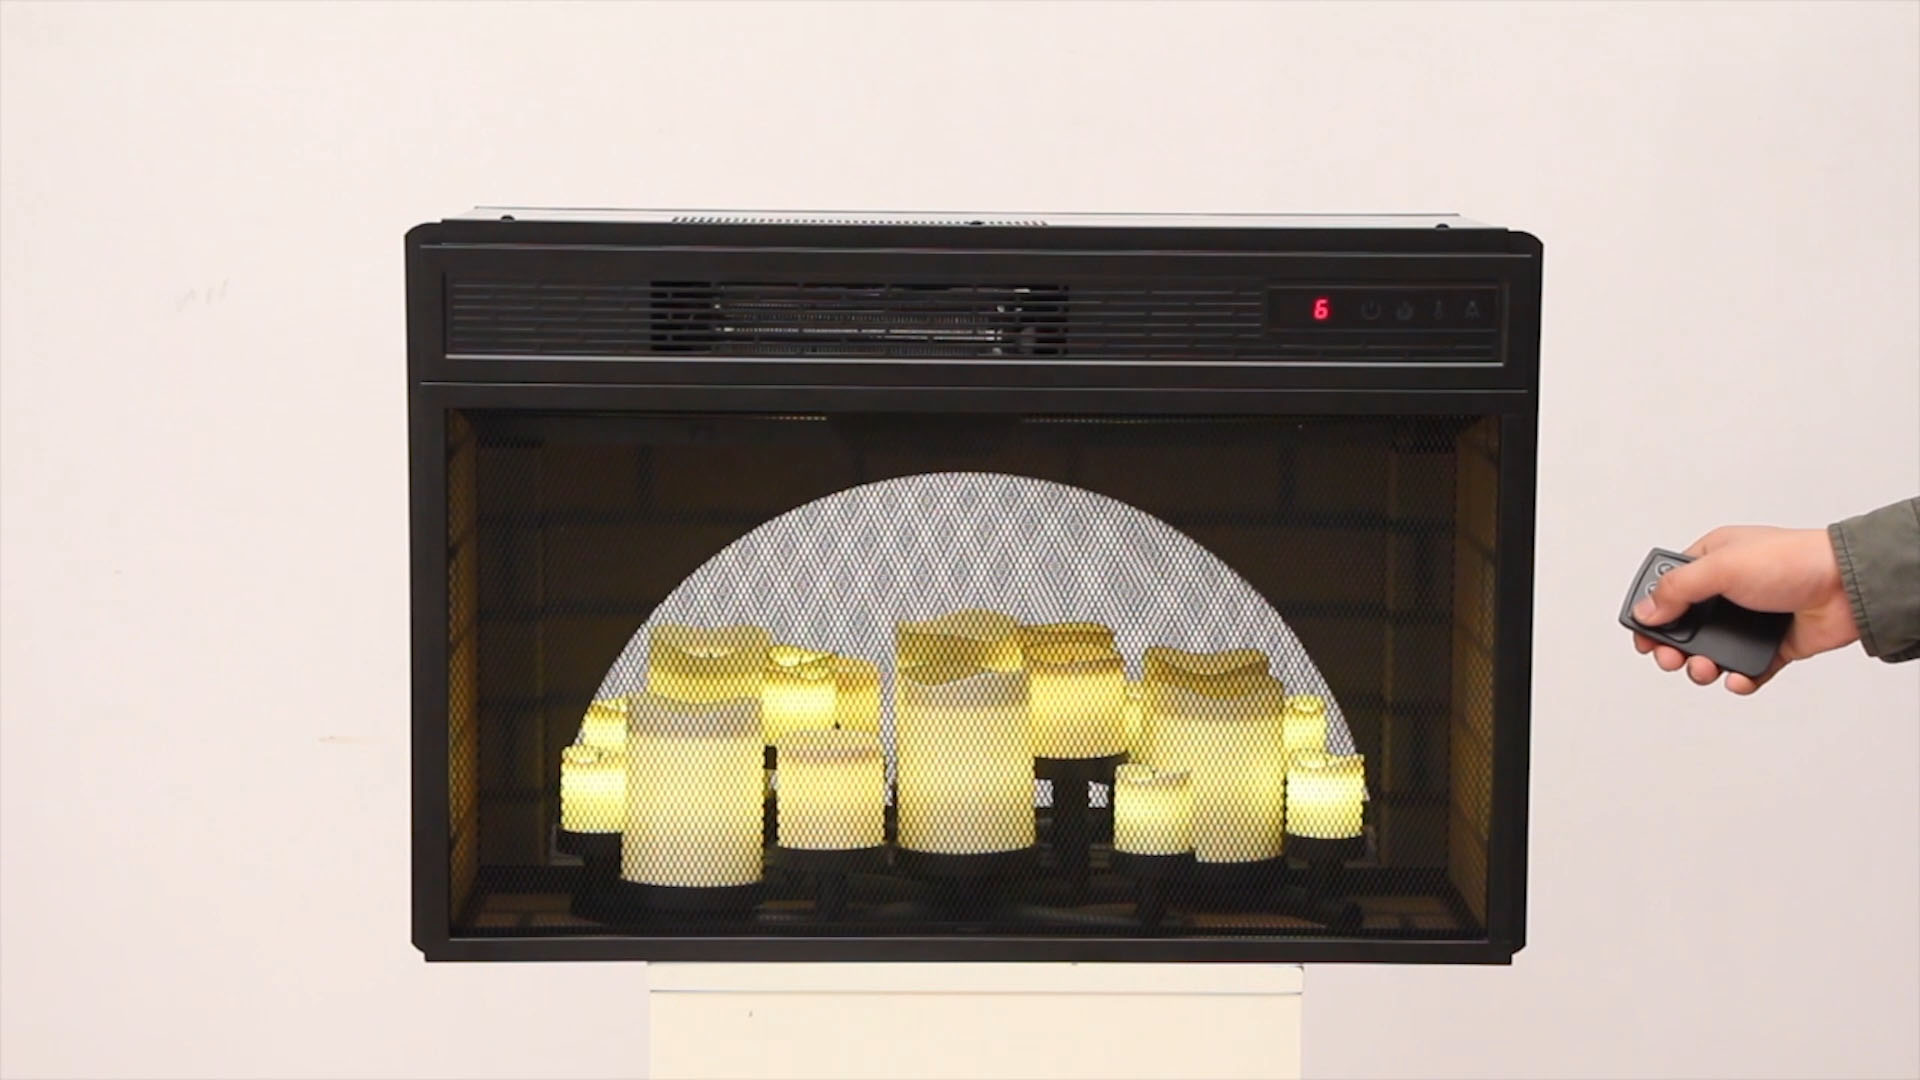 compilation chimney free new media reviews fireplace hearth amp ideas electric pleasant